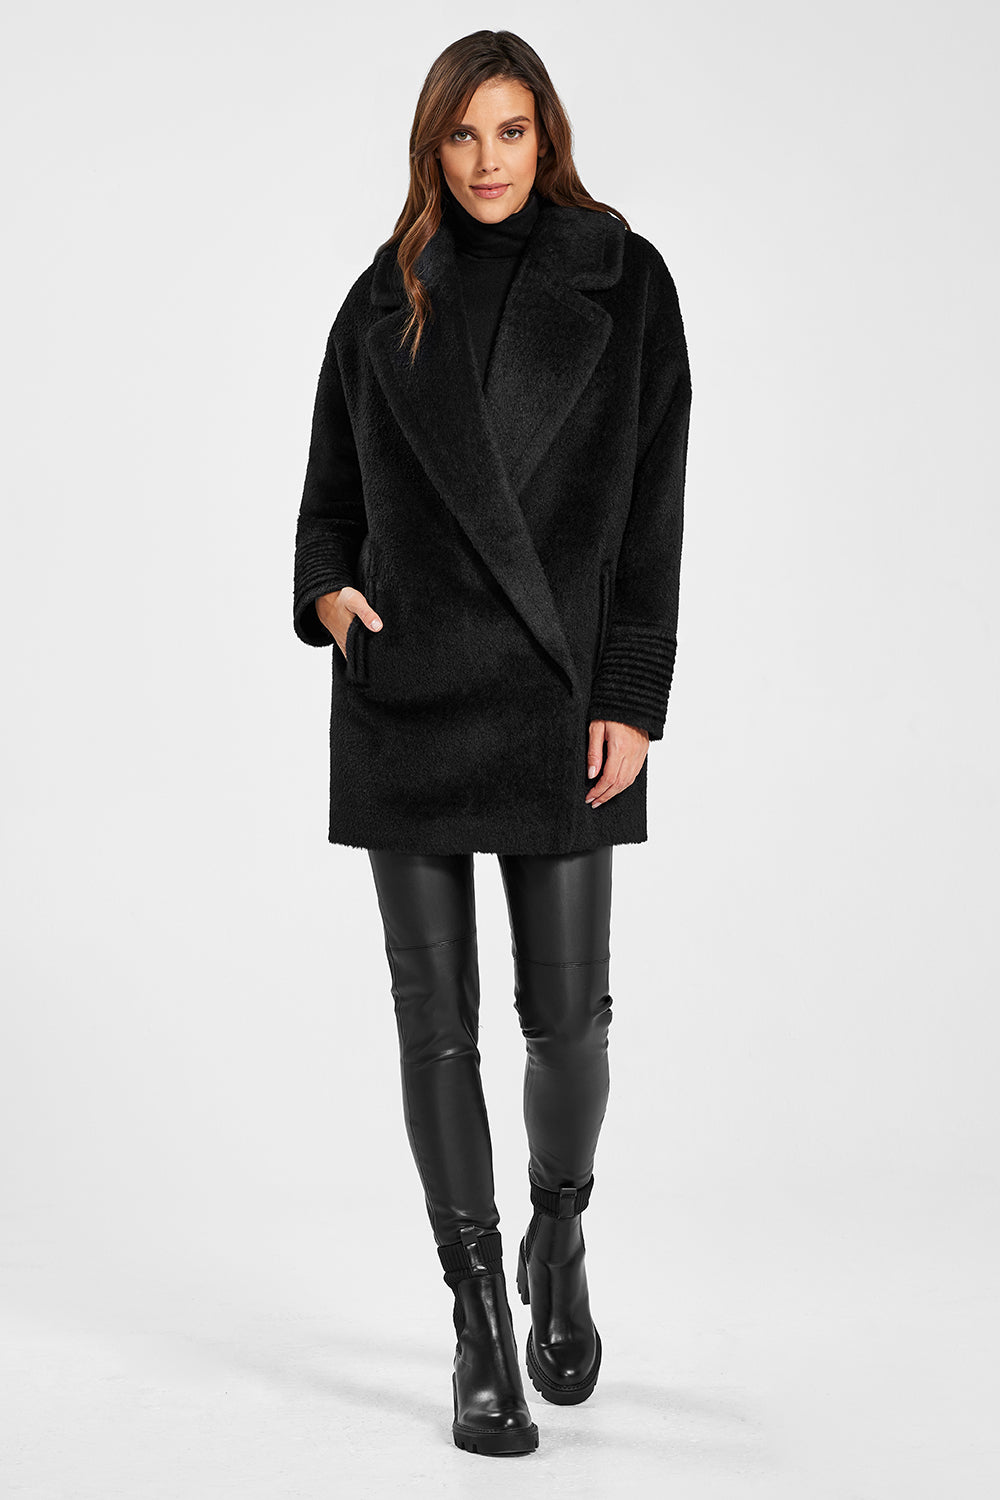 Sentaler Bouclé Alpaca Mid Length Oversized Notched Collar Coat featured in Bouclé Alpaca and available in Black. Seen from front.